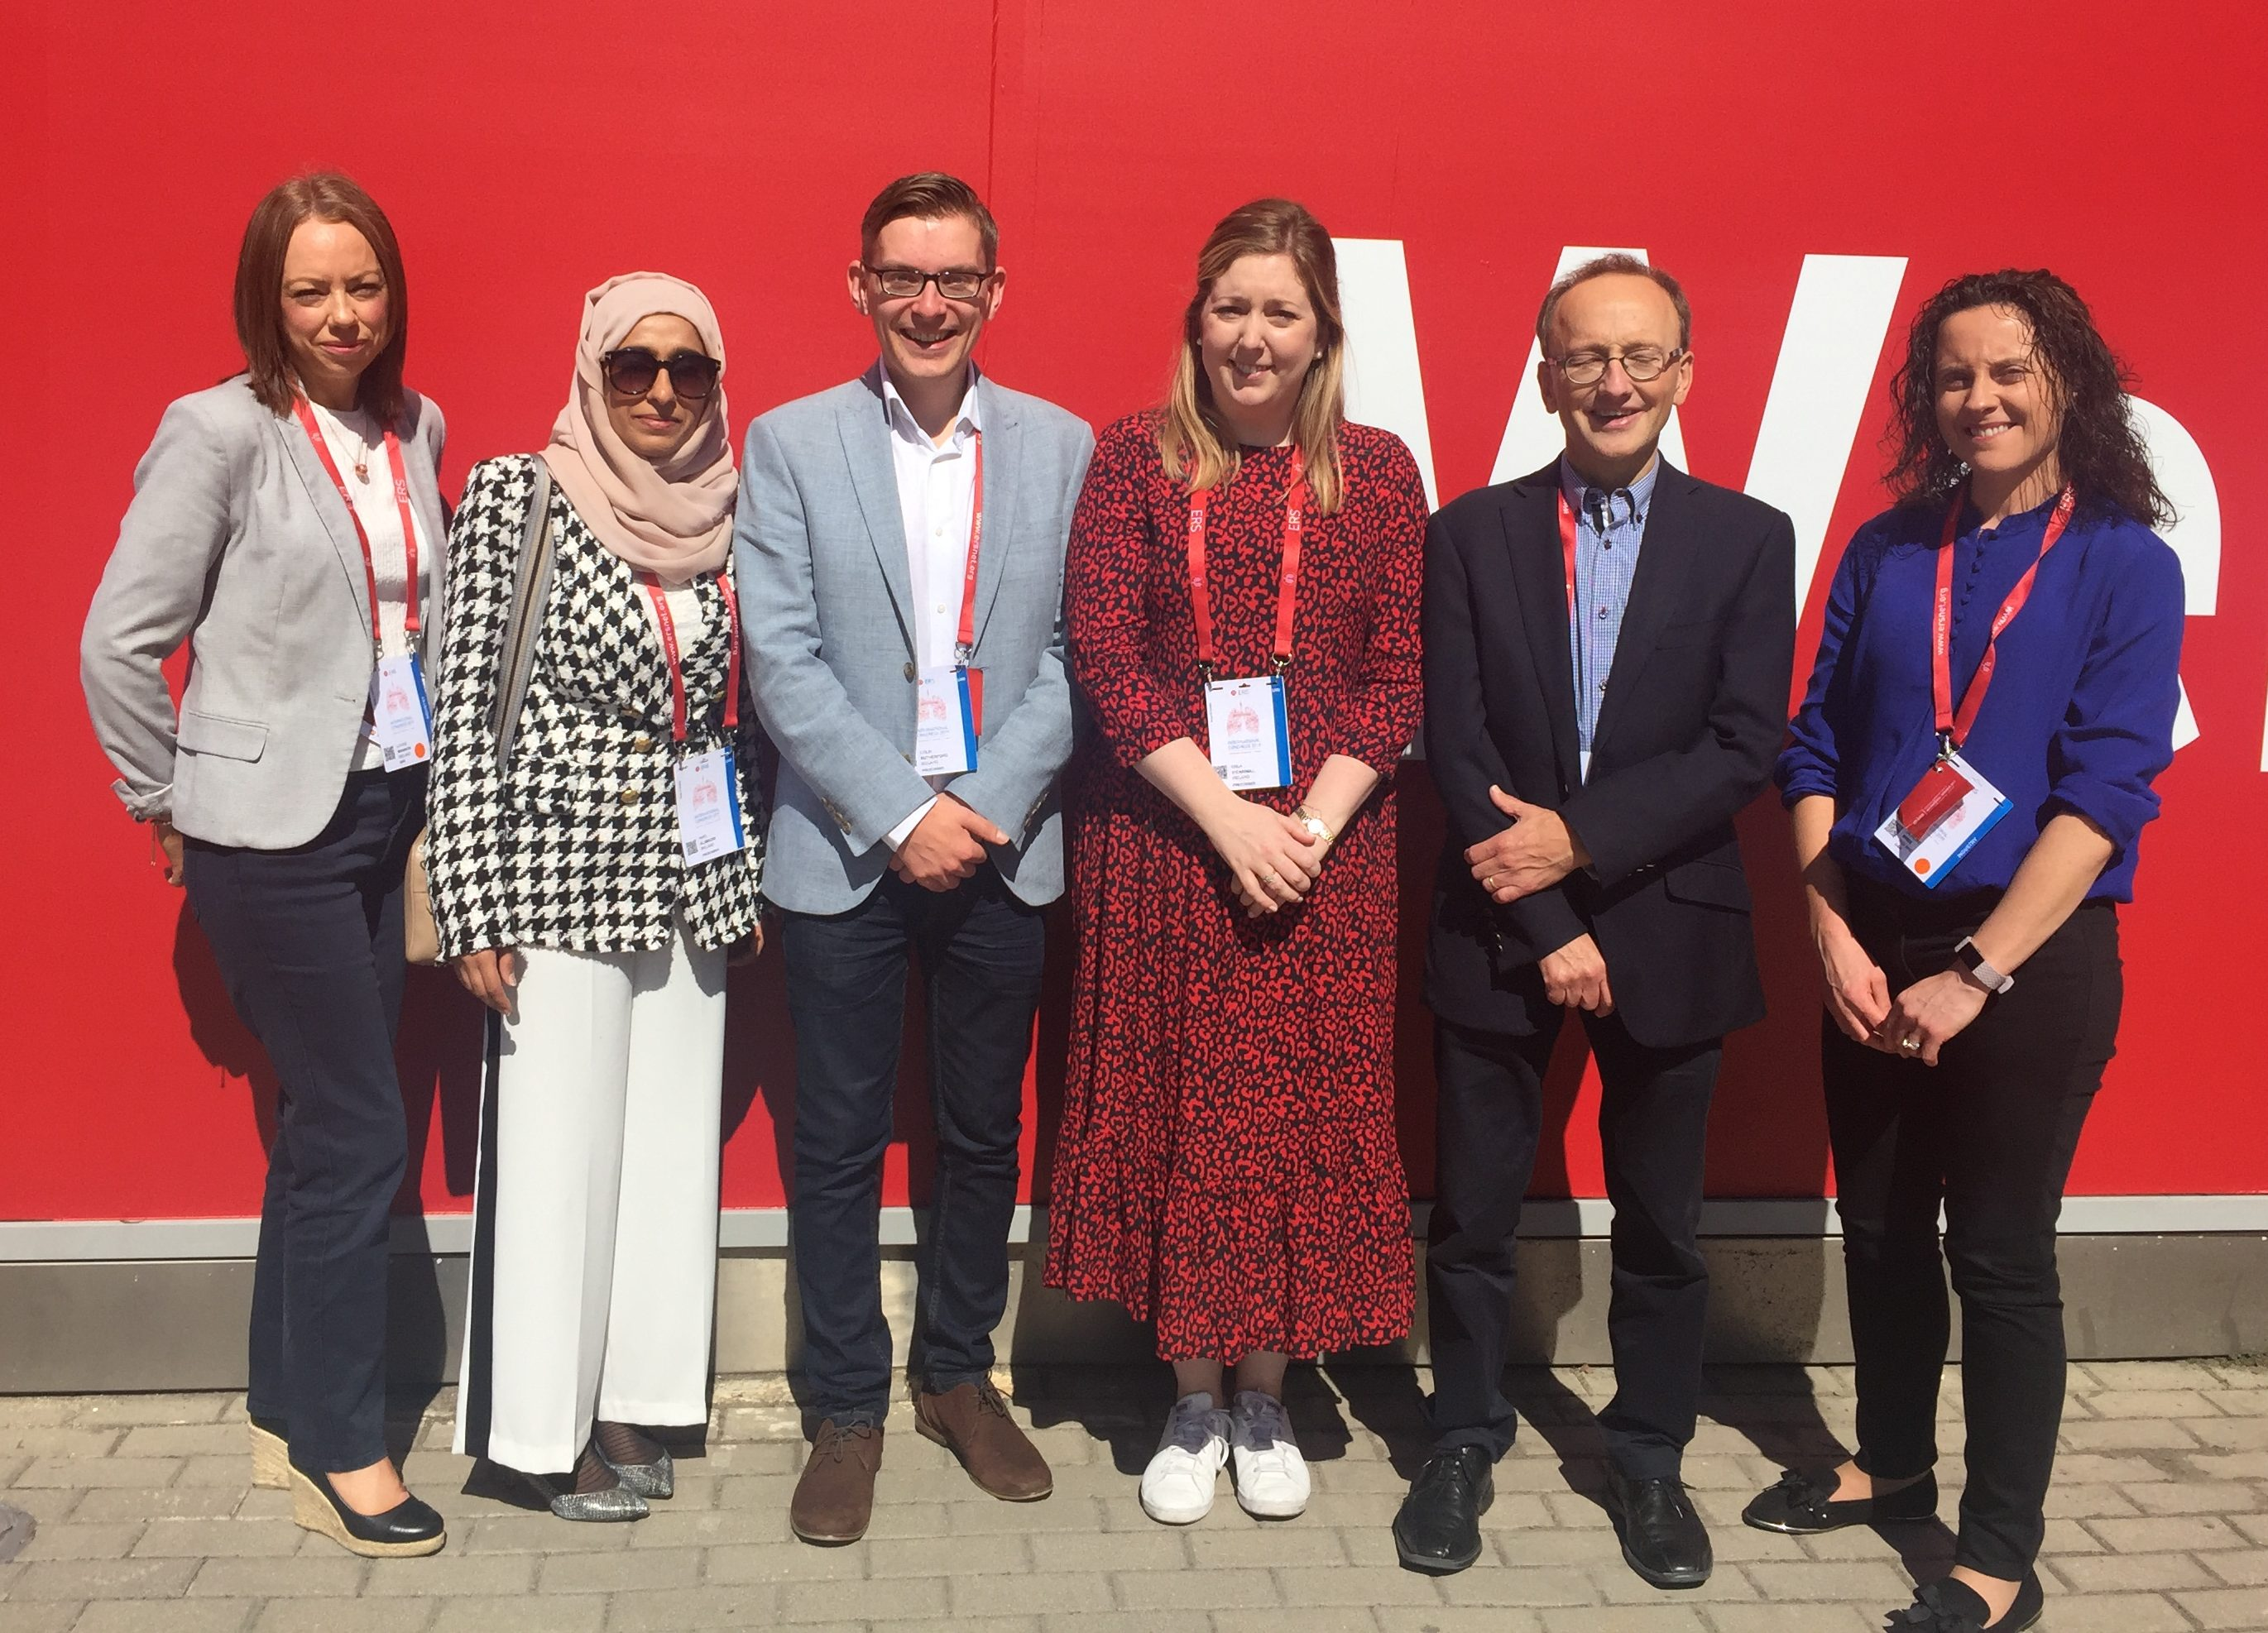 Pictured at the European Respiratory Congress in Madrid are: Ms Louise Mannion, GSK Ireland, Dr Amel Alameeri, Dr Colin Rutherford and Dr Orla O'Carroll (Bursary winners), Dr Aidan O'Brien, President, Irish Thoracic Society and Ms Deirdre Bree, GSK Ireland